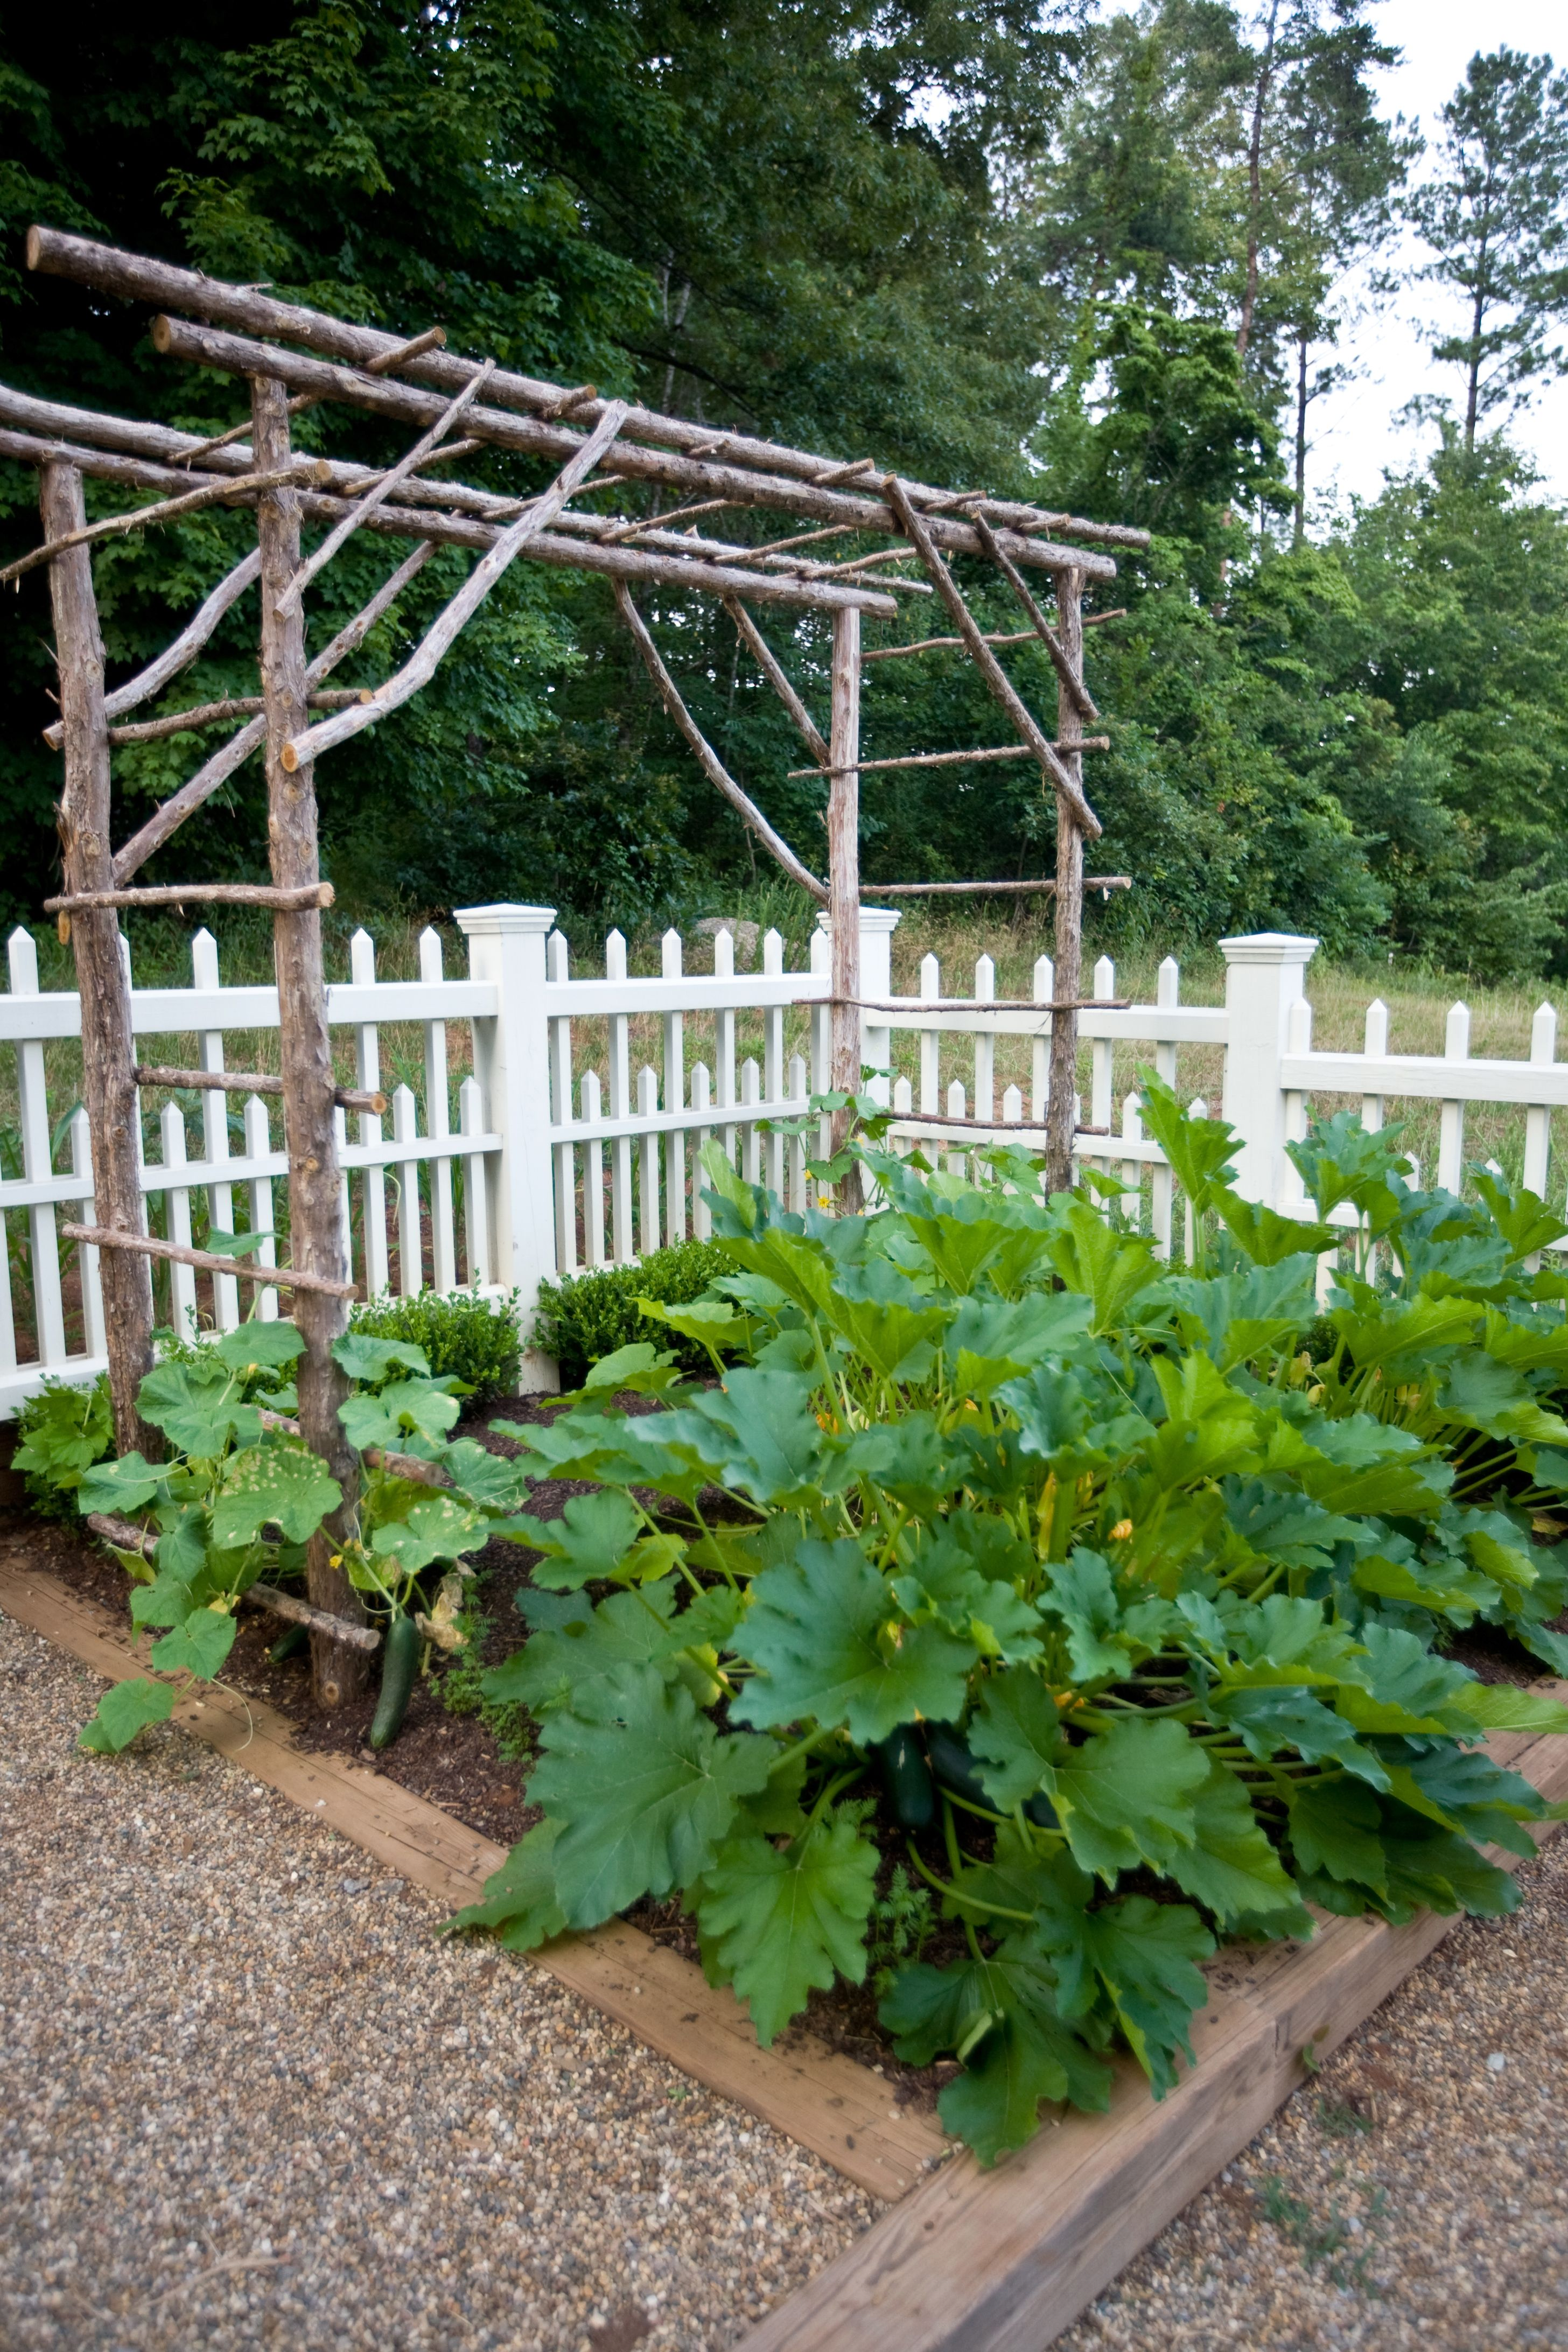 cedar trellis for climbing cucumber vines and decorative gourds